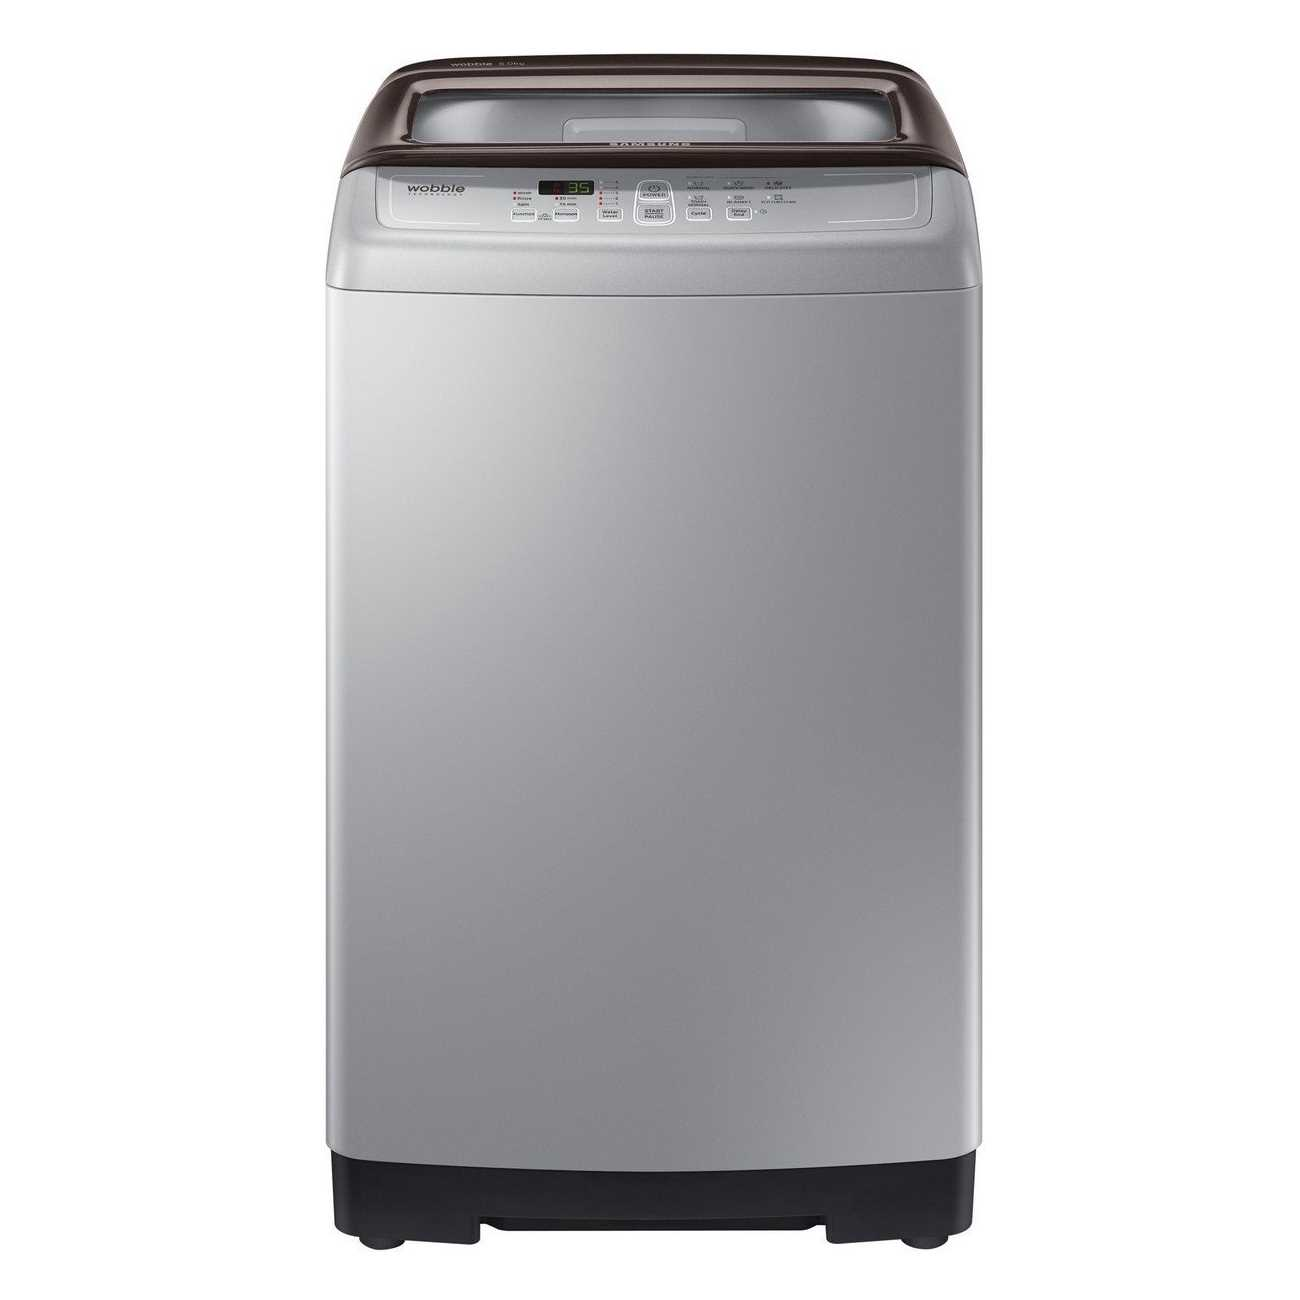 Samsung WA60M4300HD 6 Kg Fully Automatic Top Loading Washing Machine